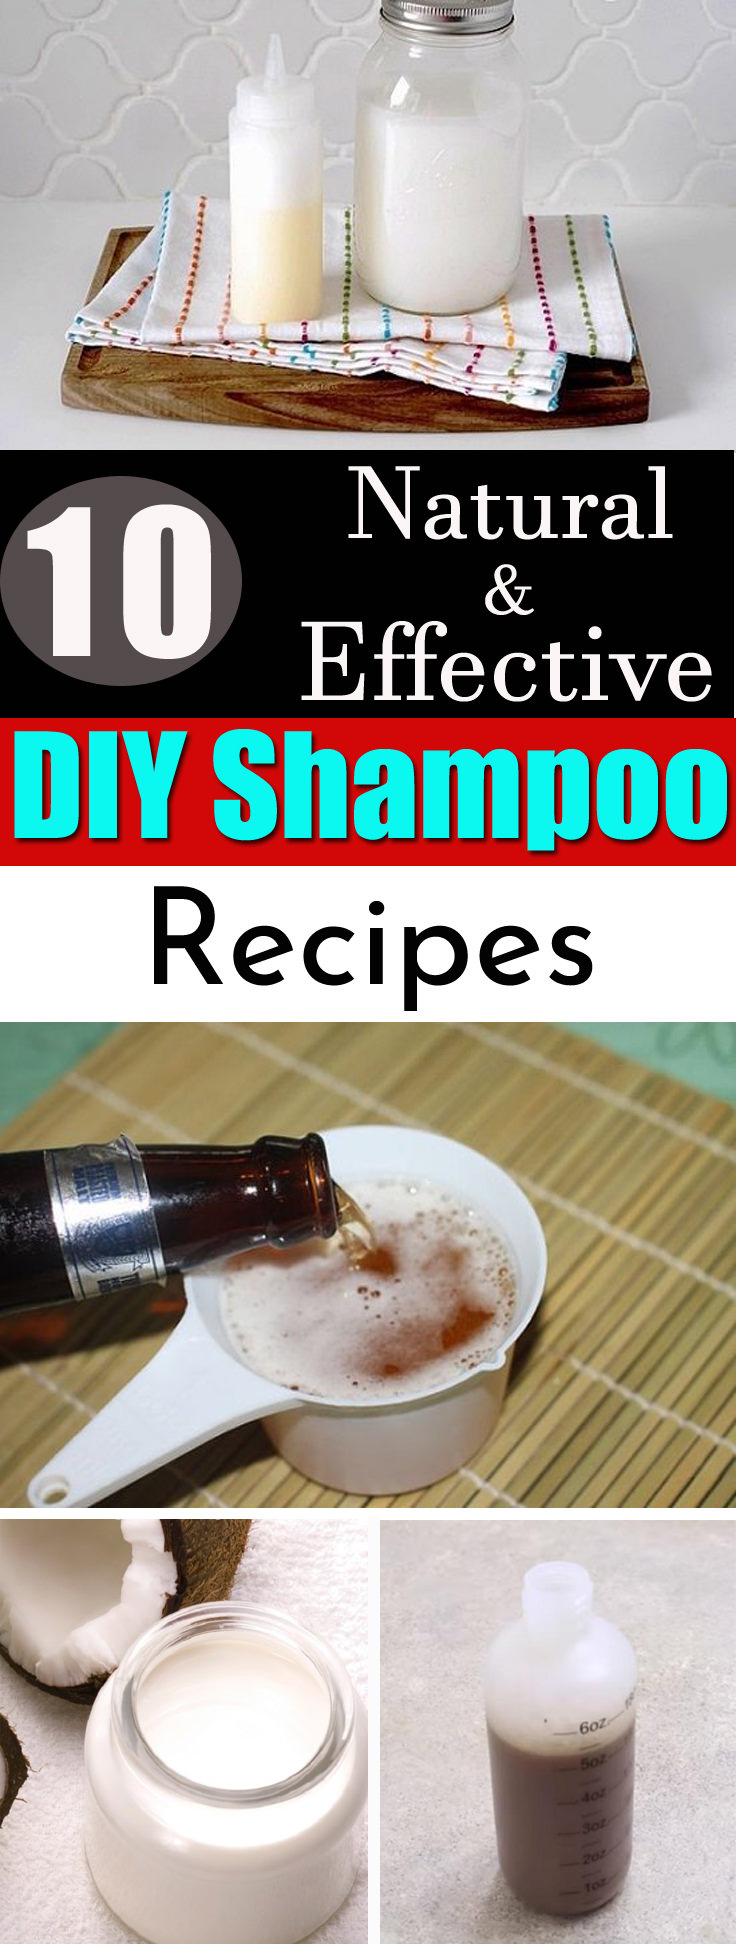 Try one of these Organic, Homemade Shampoo Recipes to bring back the natural shine and luster of your hair! Unlike the commercial shampoos, these are chemical free and doesn't leave any toxic effect on your hair.